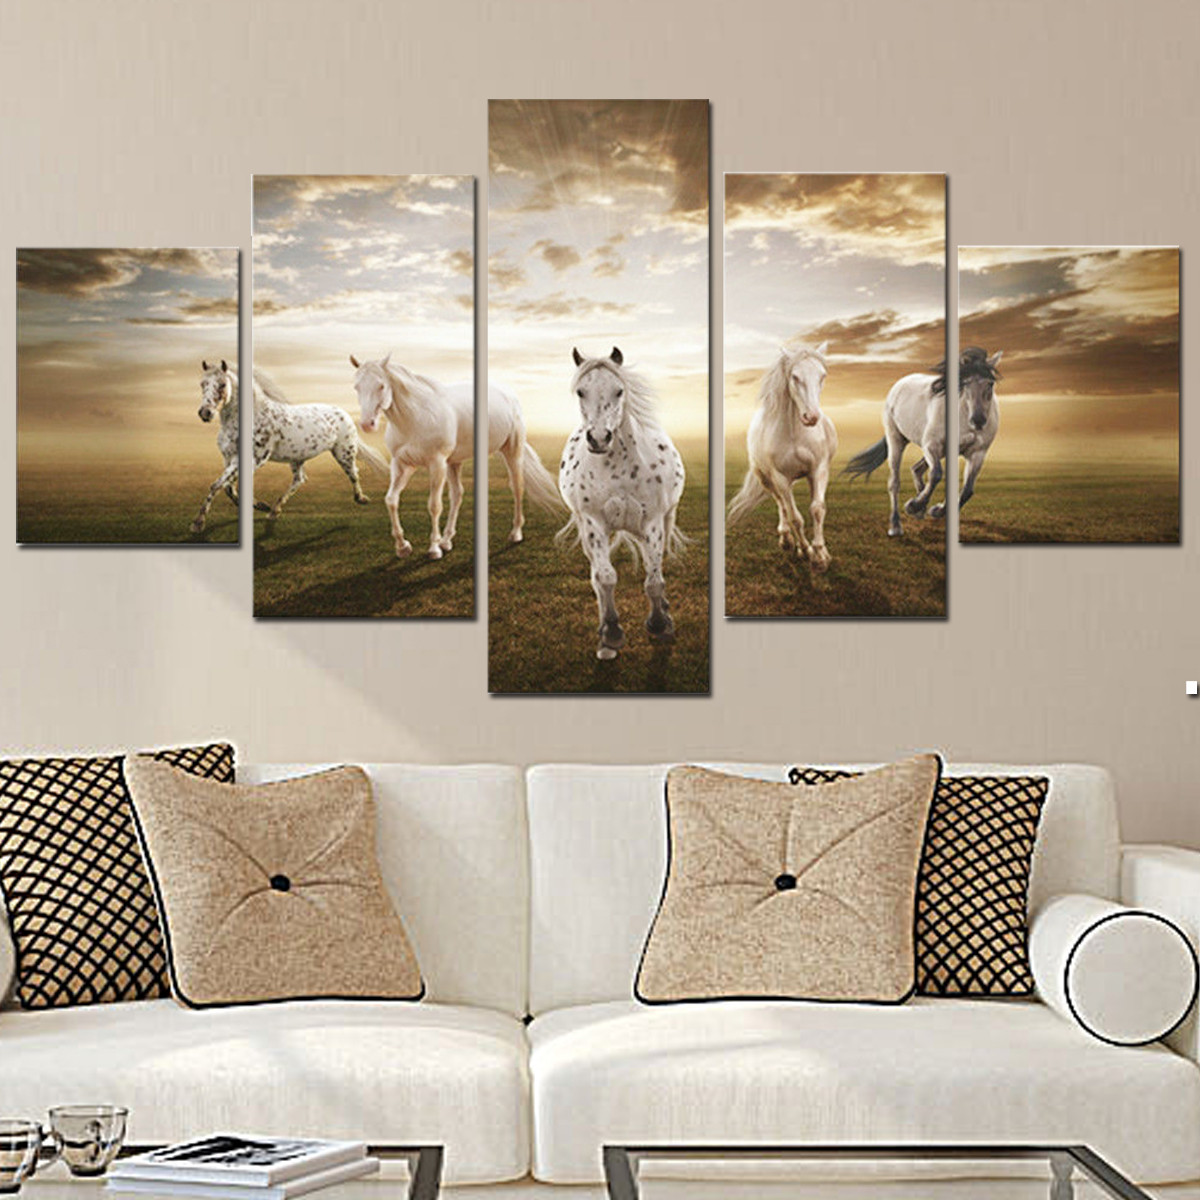 5Pcs Running Horse Oil Painting Picture Canvas Prints Modern Abstract Art Home Wall Decor No Frame by